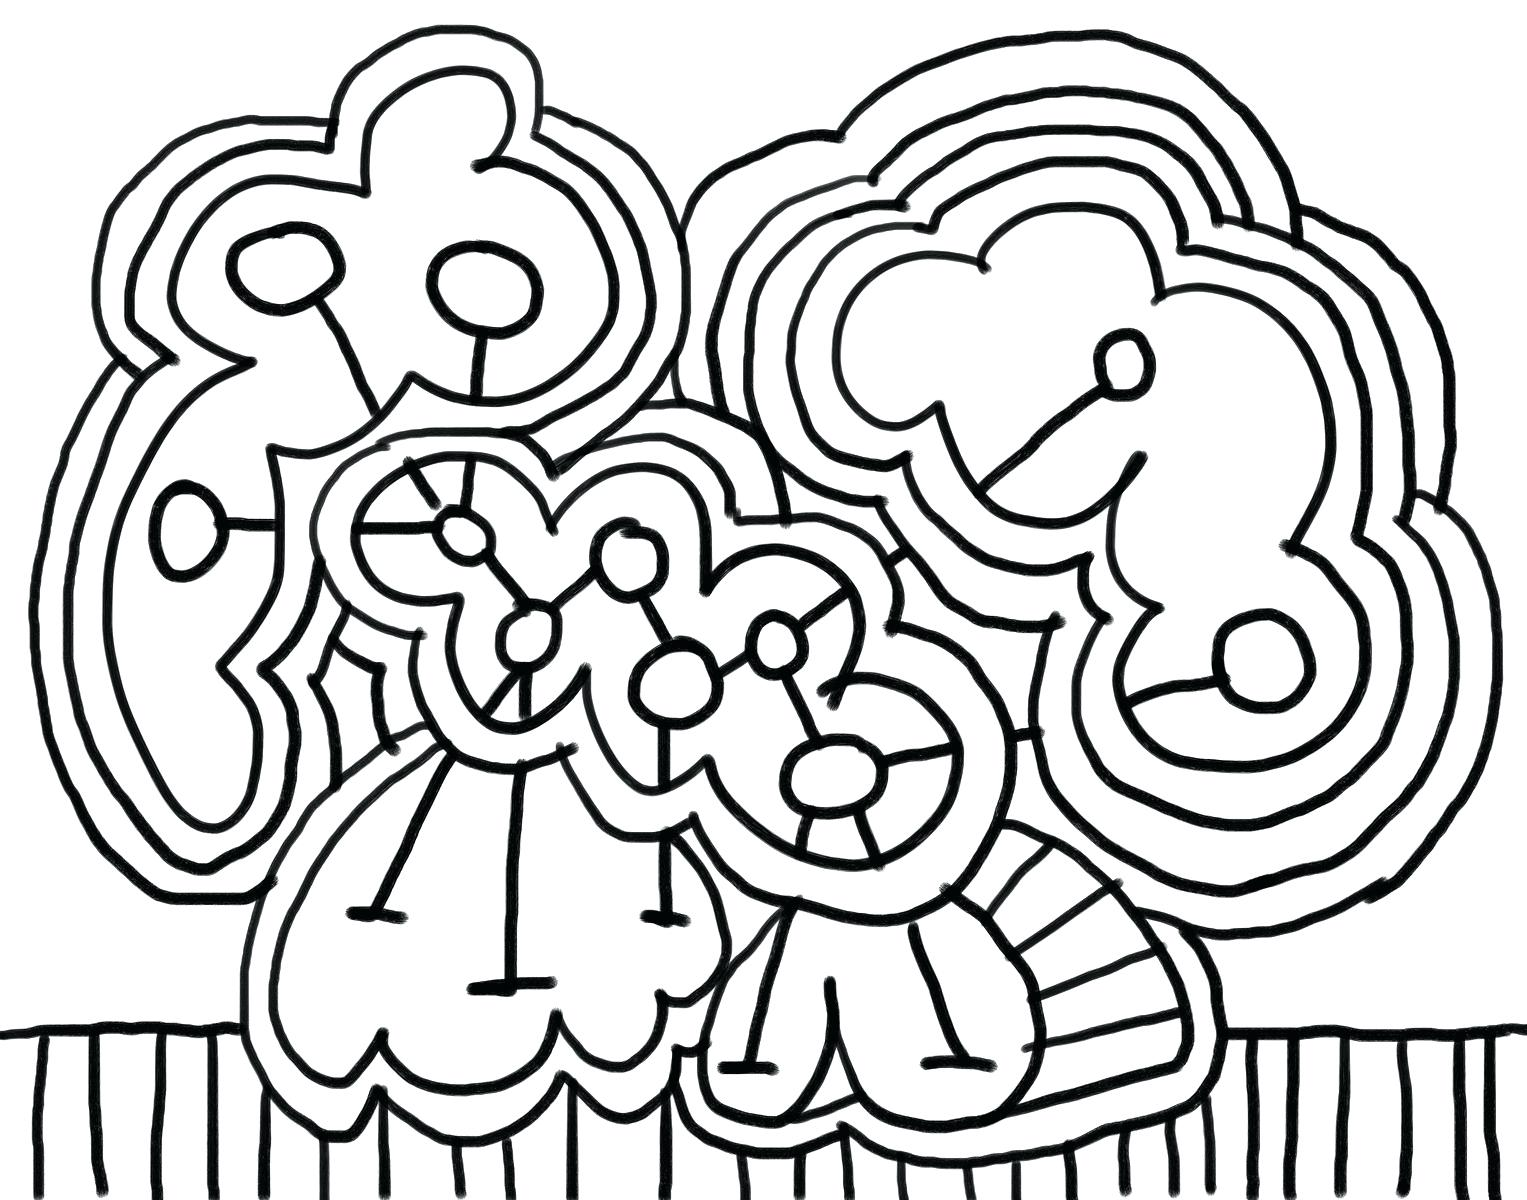 1527x1200 Coloring Do A Dot Art Coloring Pages Bingo. Do A Dot Art Coloring